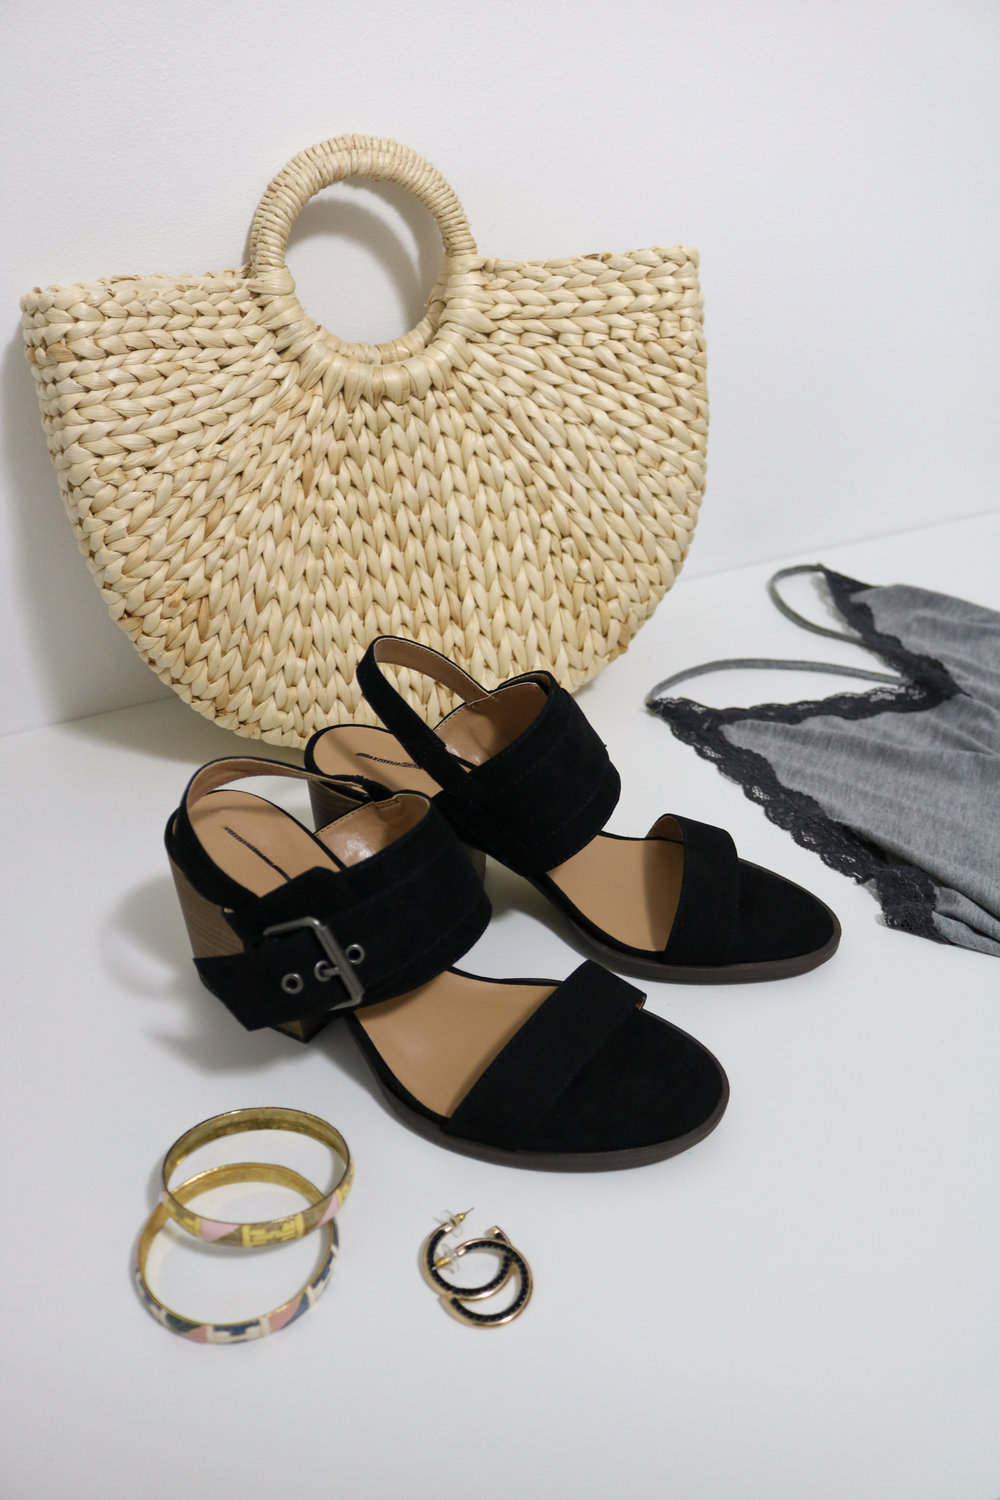 Black heels and straw circle bags are some of the newest and coolest accessories to add to a Millennial's closet. It only gets better since they were both under $15 thrifted!